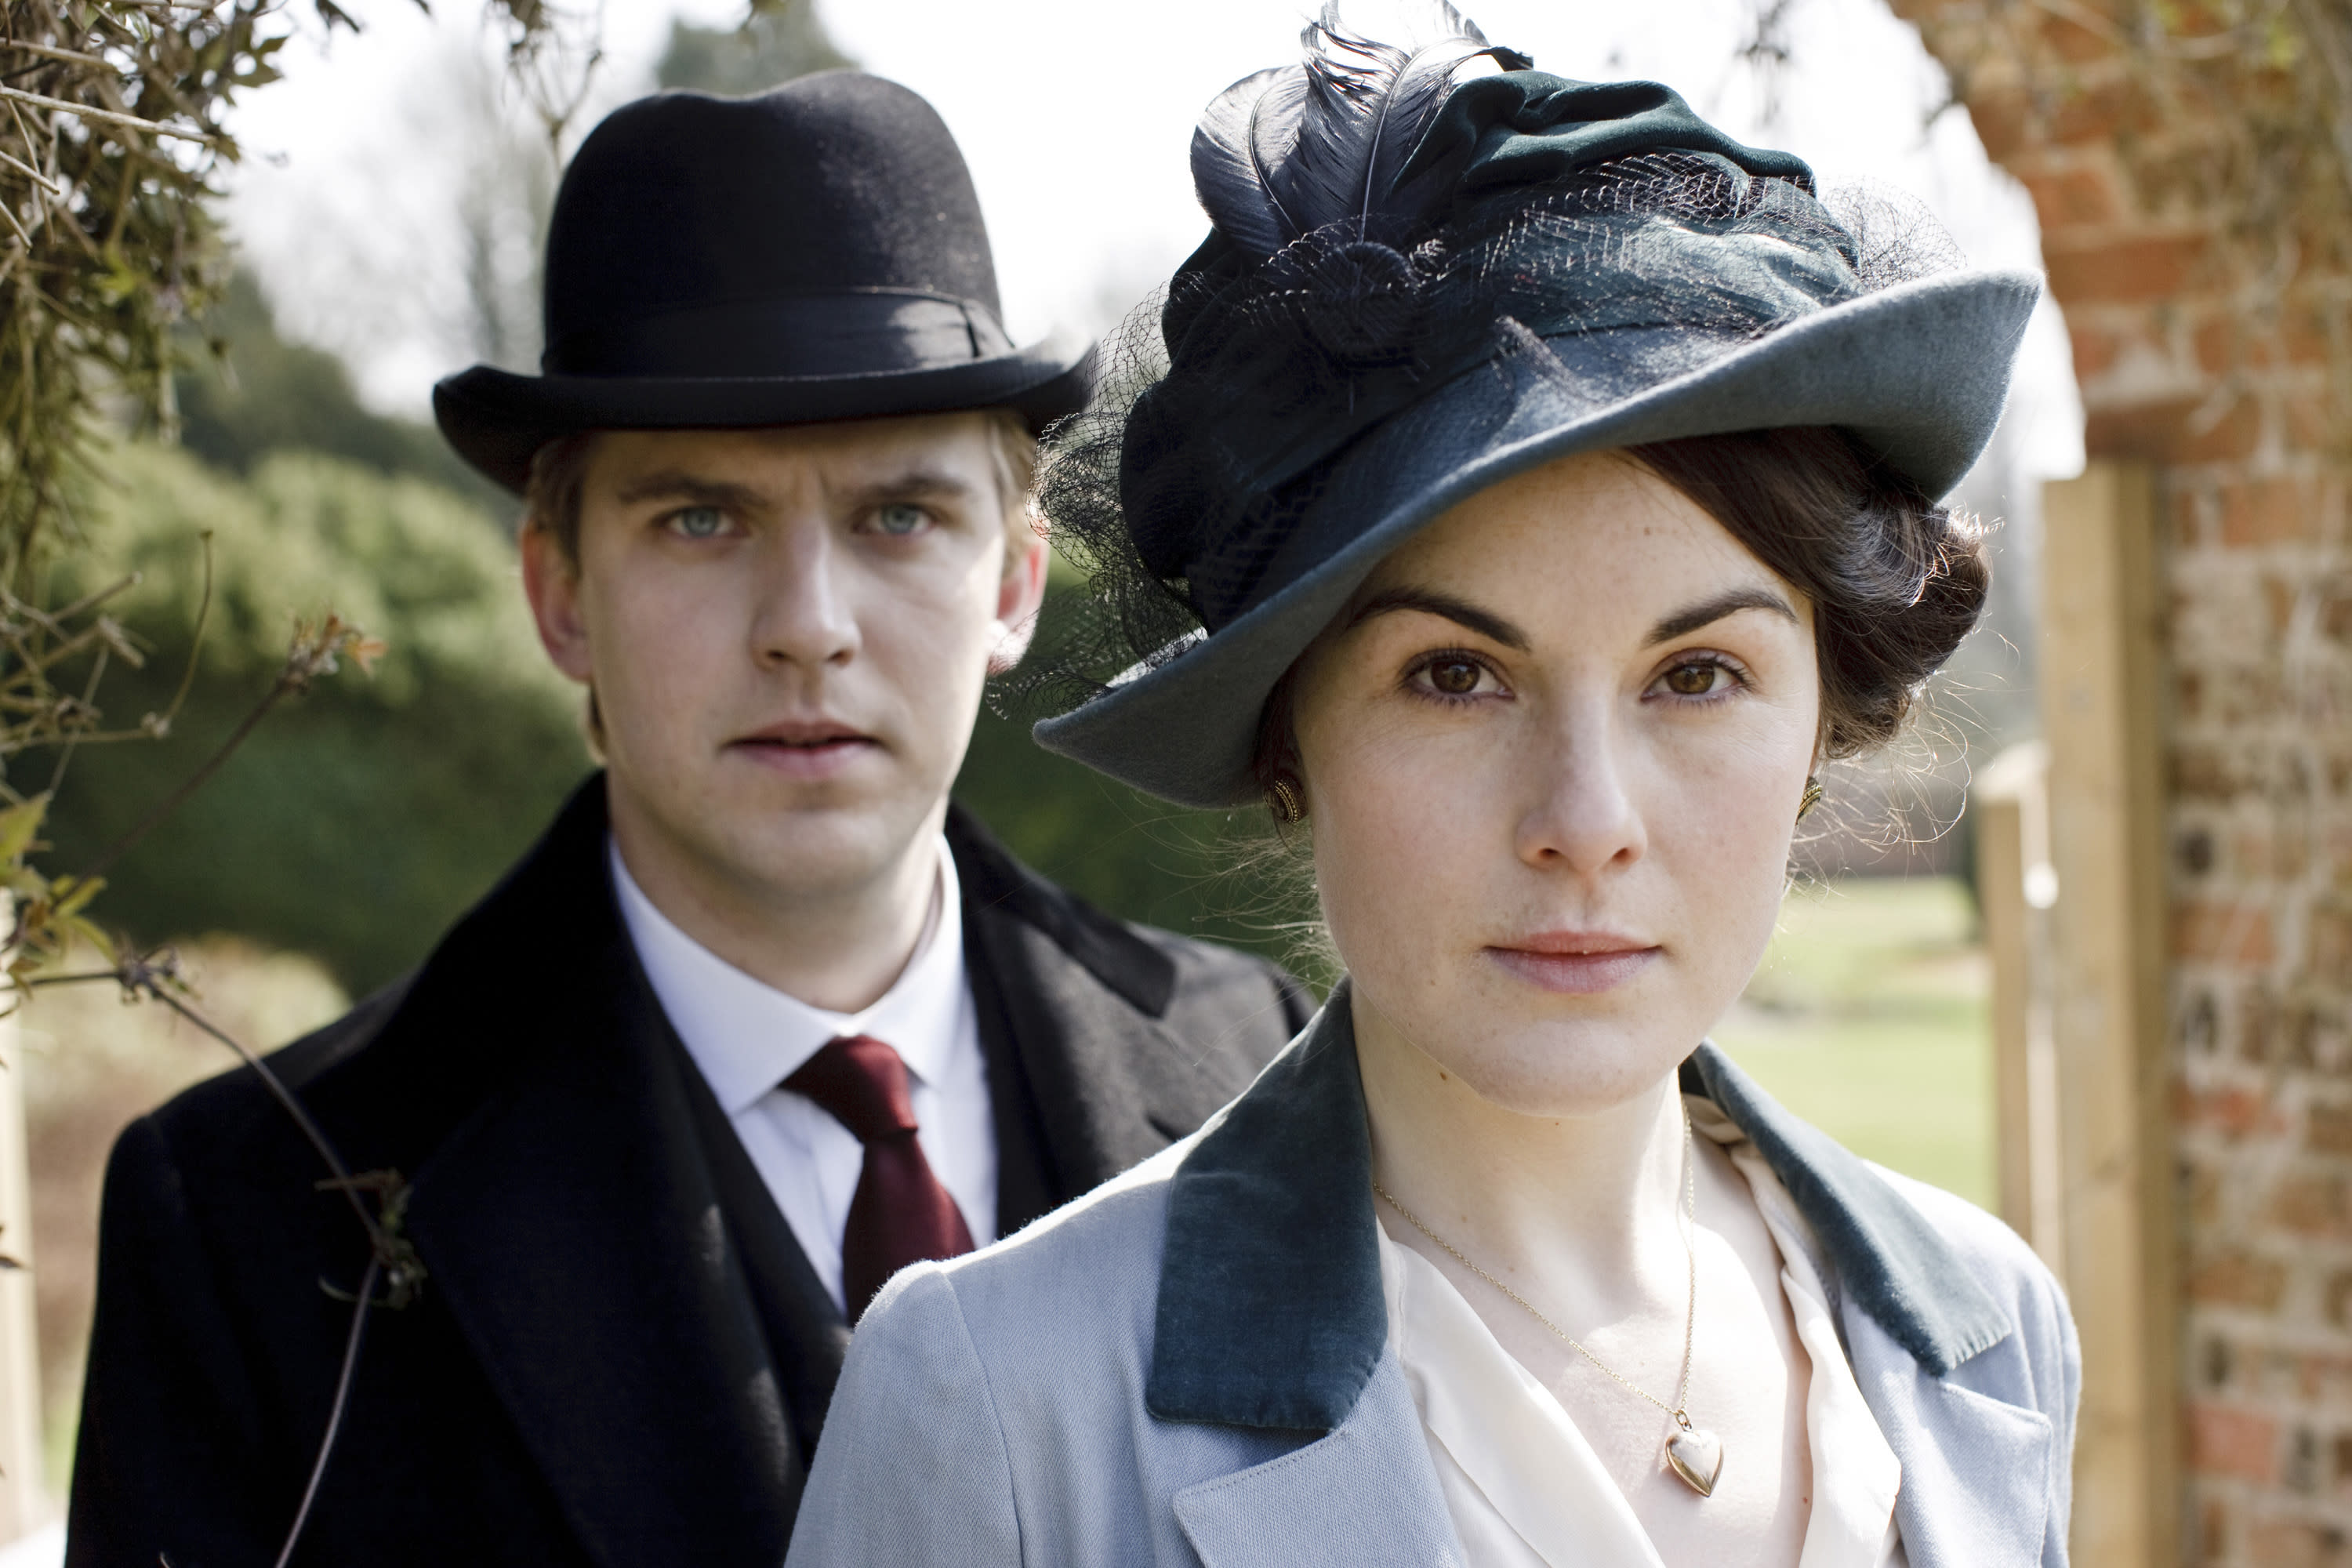 With 'Downton Abbey's coming demise, here are 5 past deaths